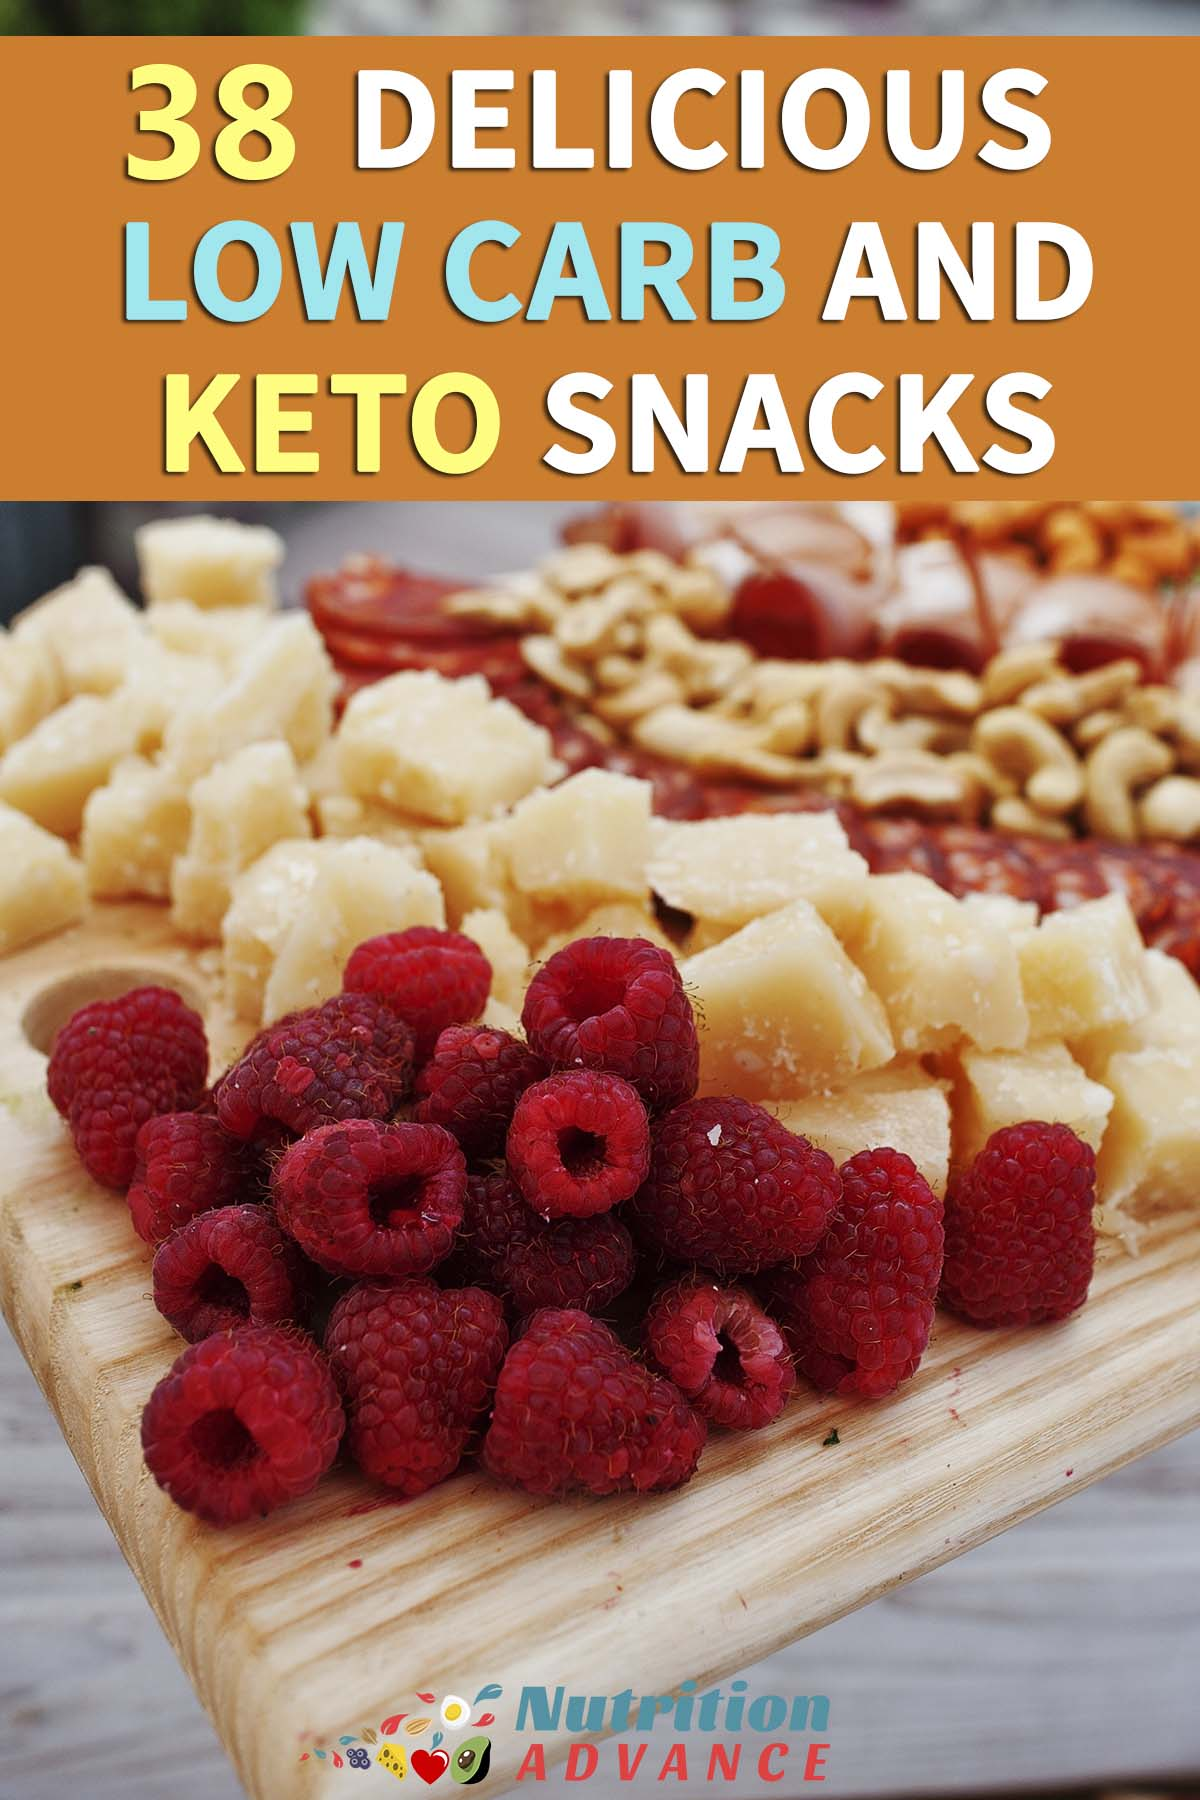 38 Delicious Low Carb and Keto Snacks – Looking for inspiration? Then here's a list of 38 delicious keto snacks, recipes, foods,